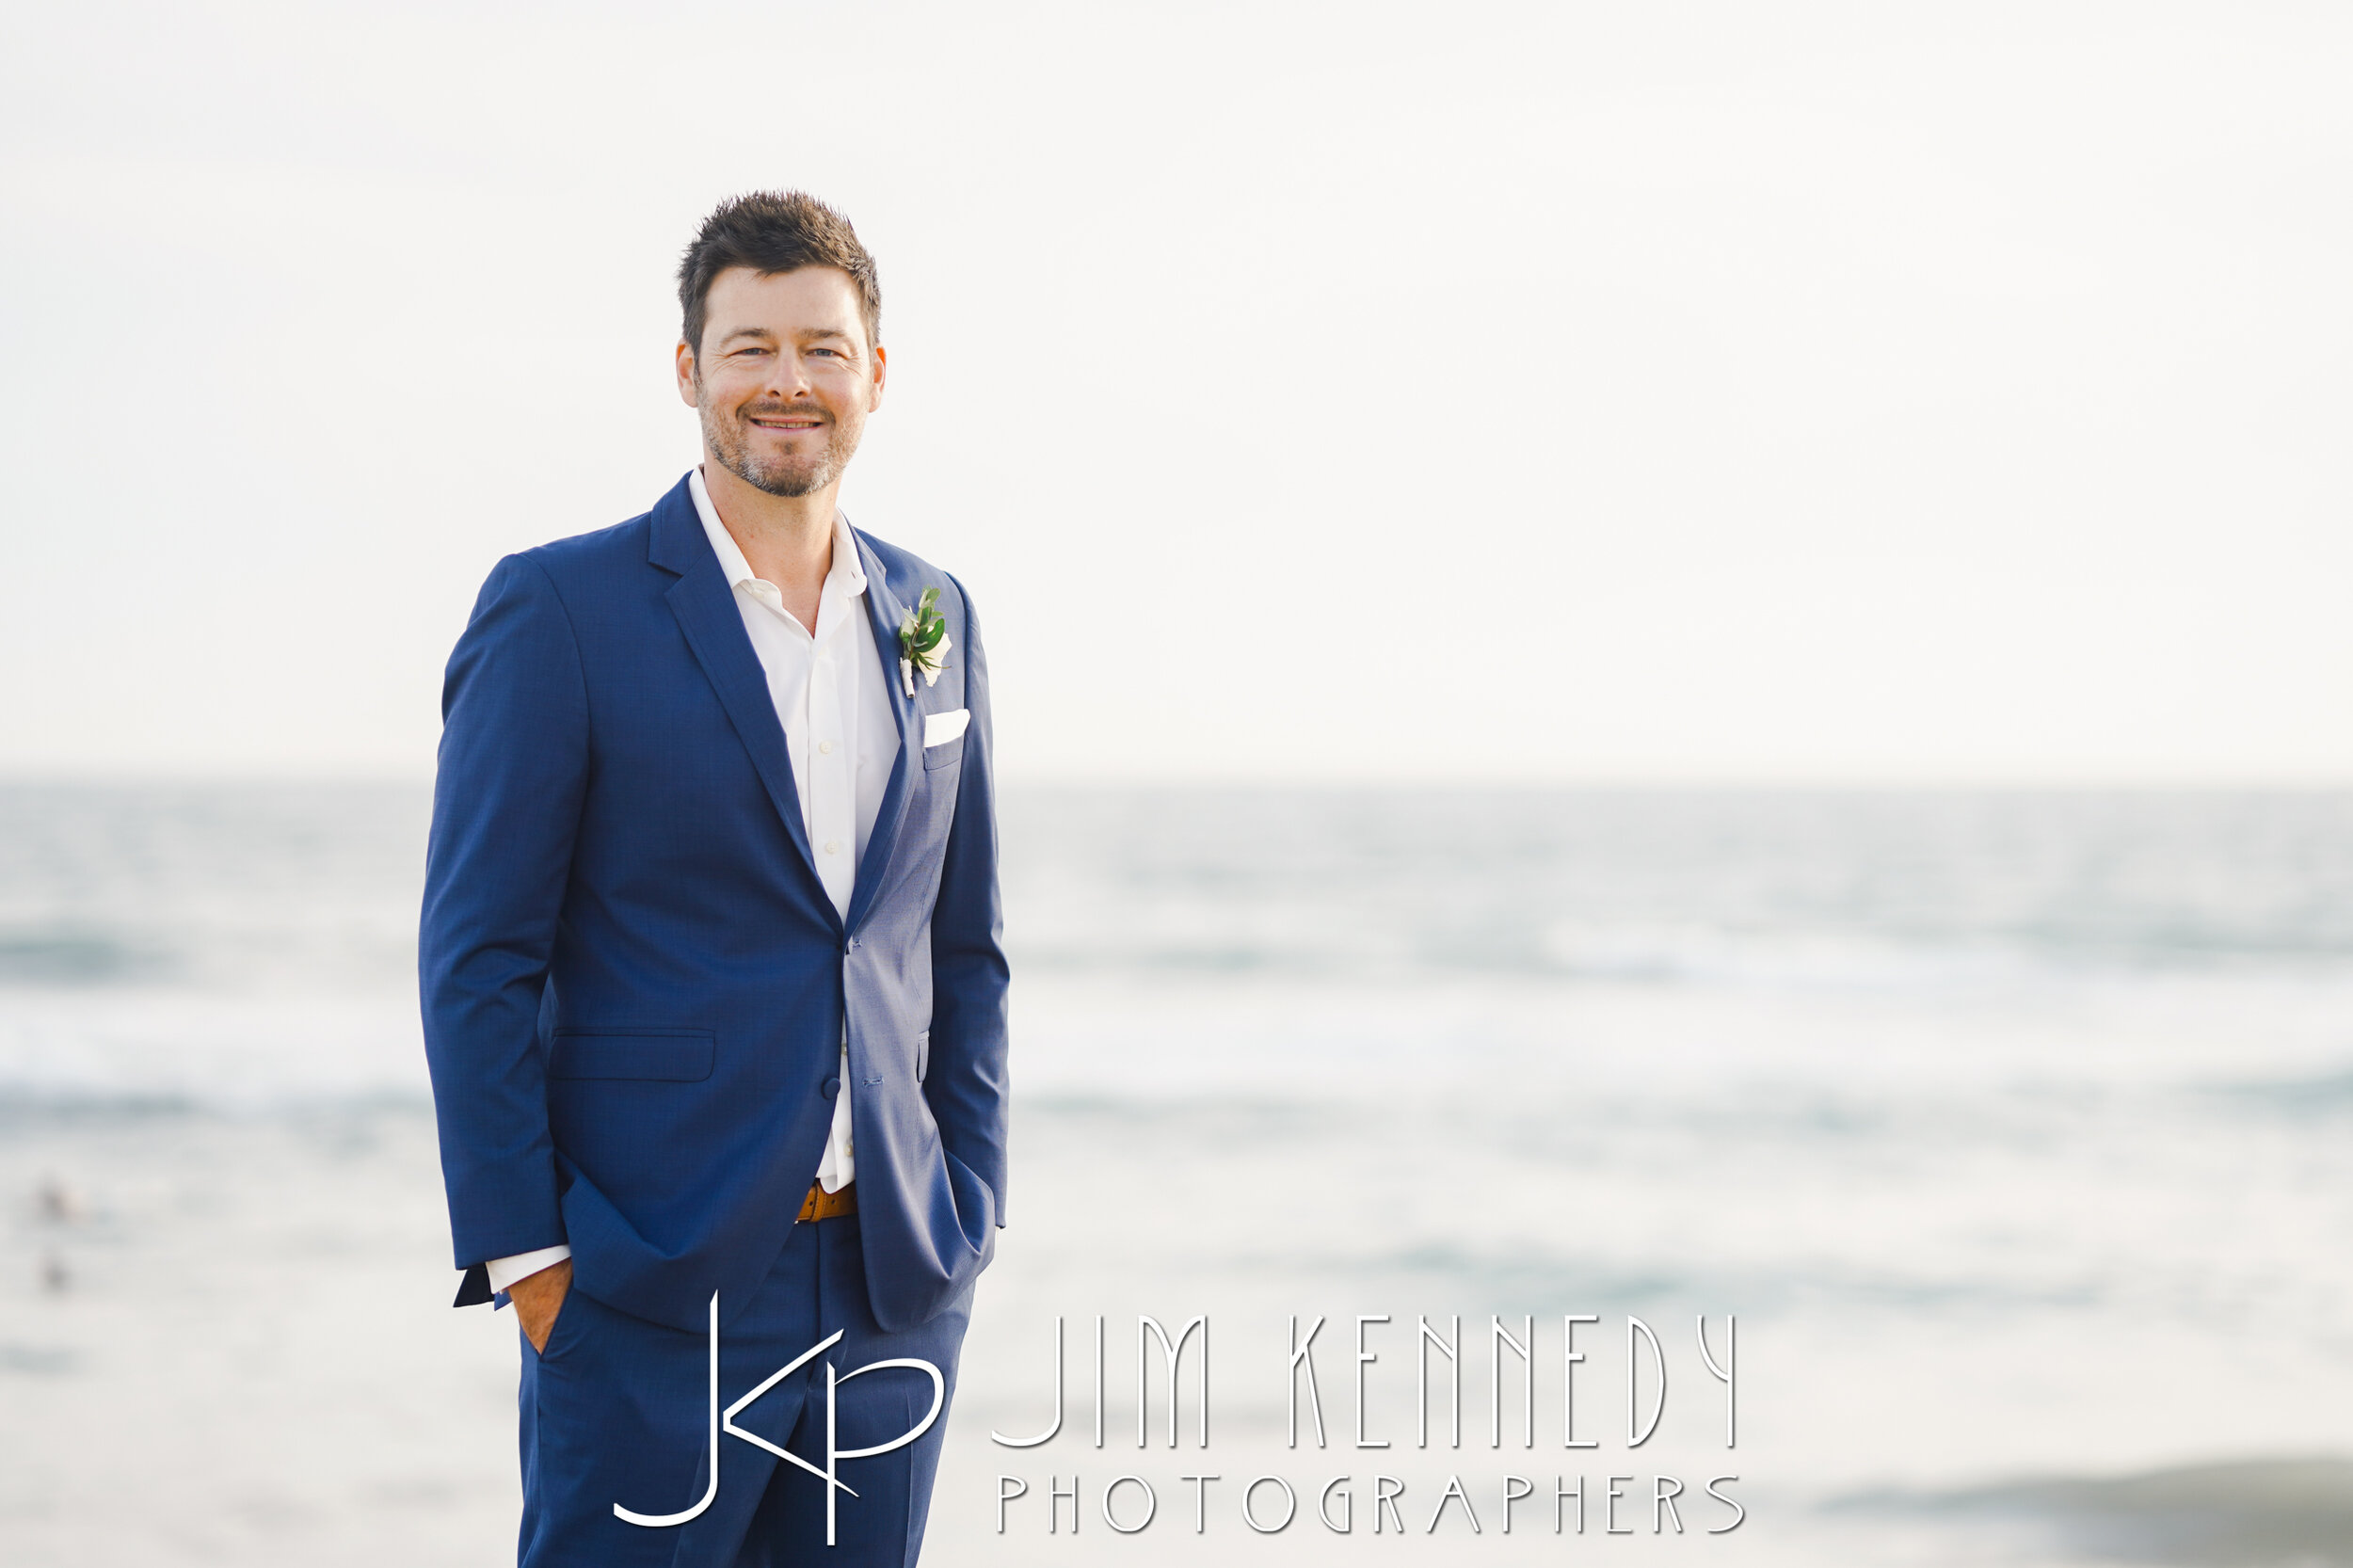 waterfront-hilton-wedding-jim-kennedy-photographers_0150.JPG